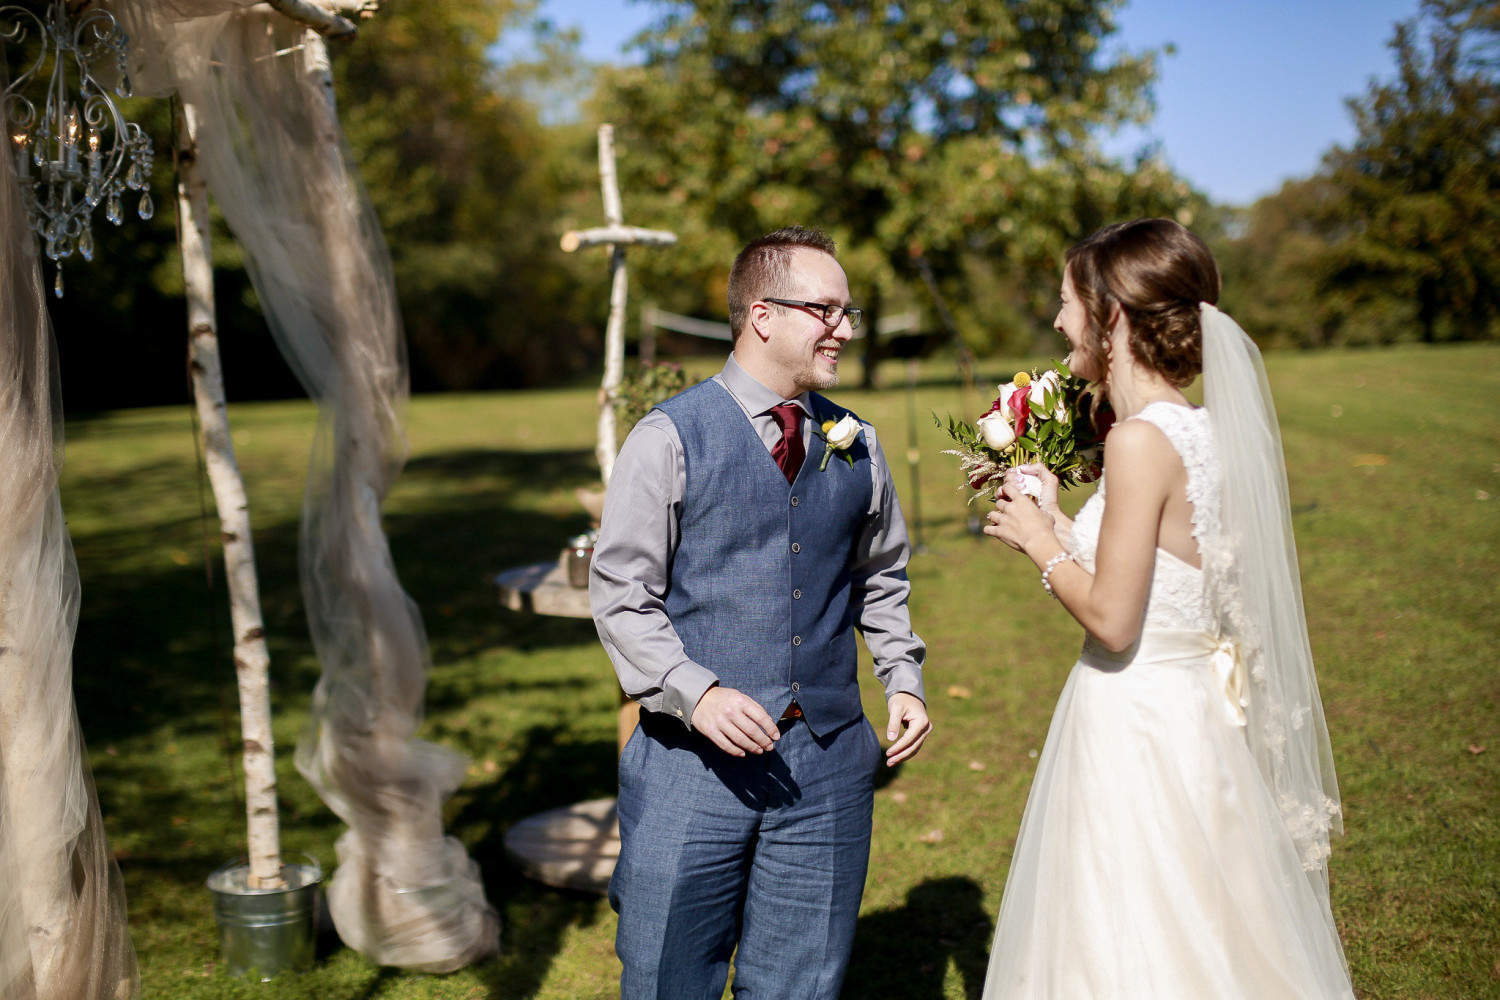 Bloomington Normal Central Illinois Wedding Photographers Caitlin & Luke Photography